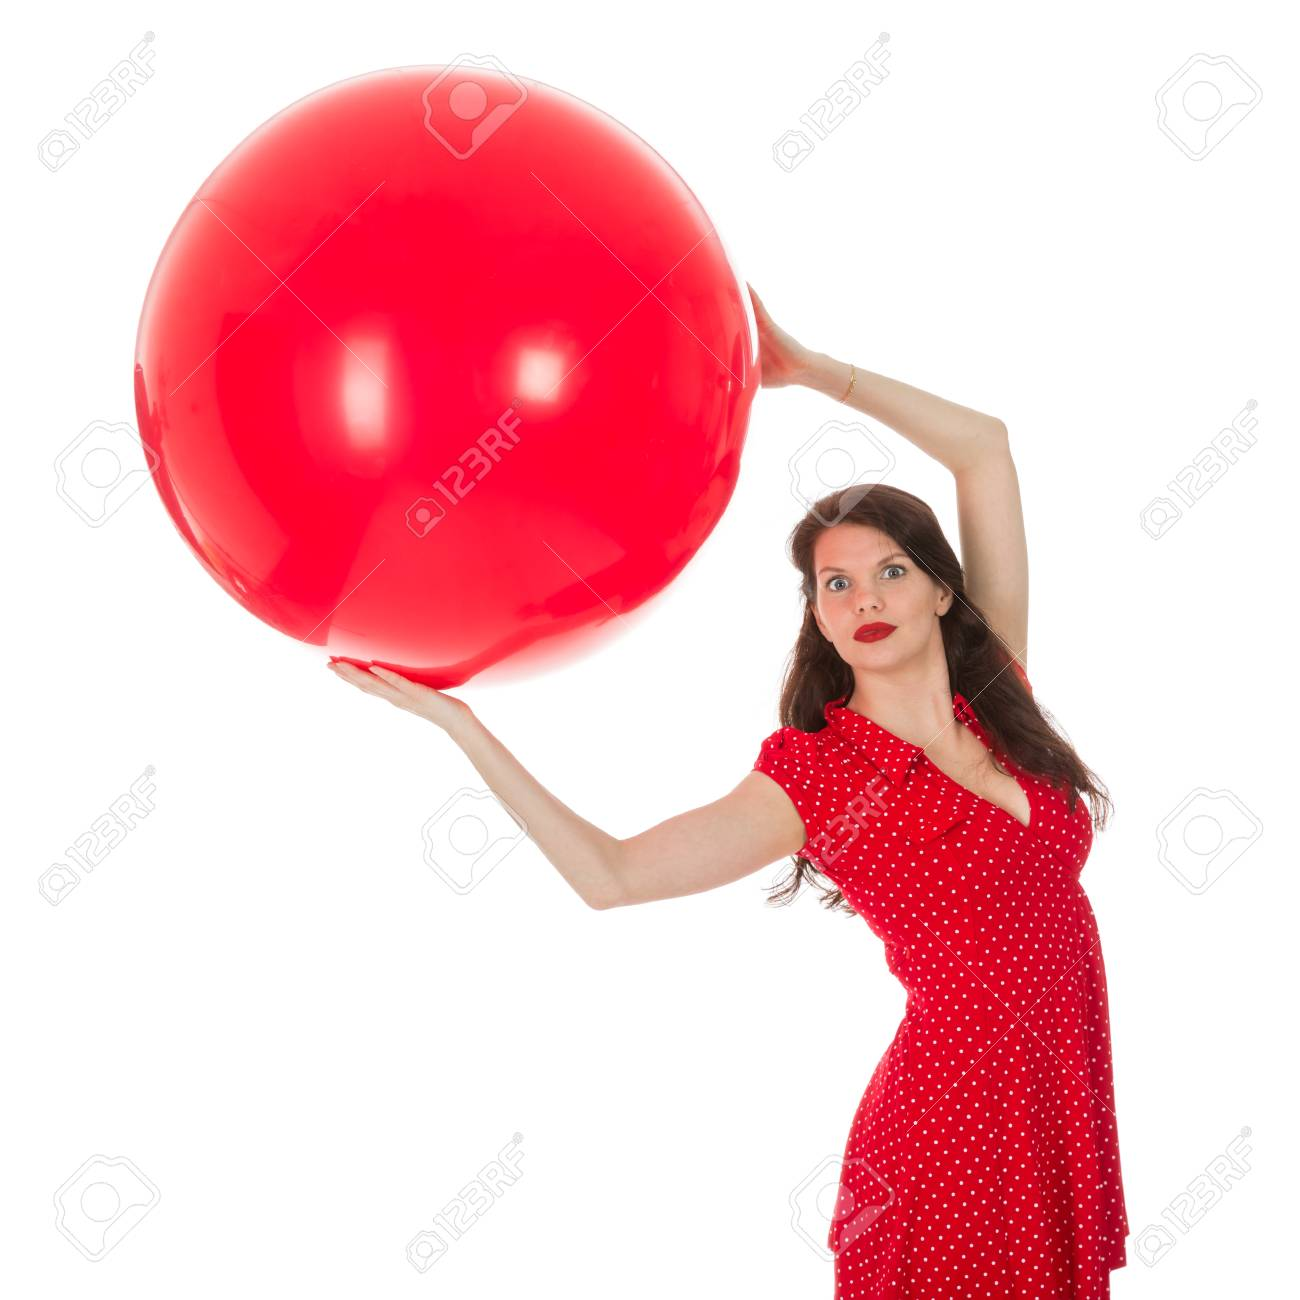 95e8dc33a Beautiful woman in red dress holding a big red balloon above her head  isolated on a